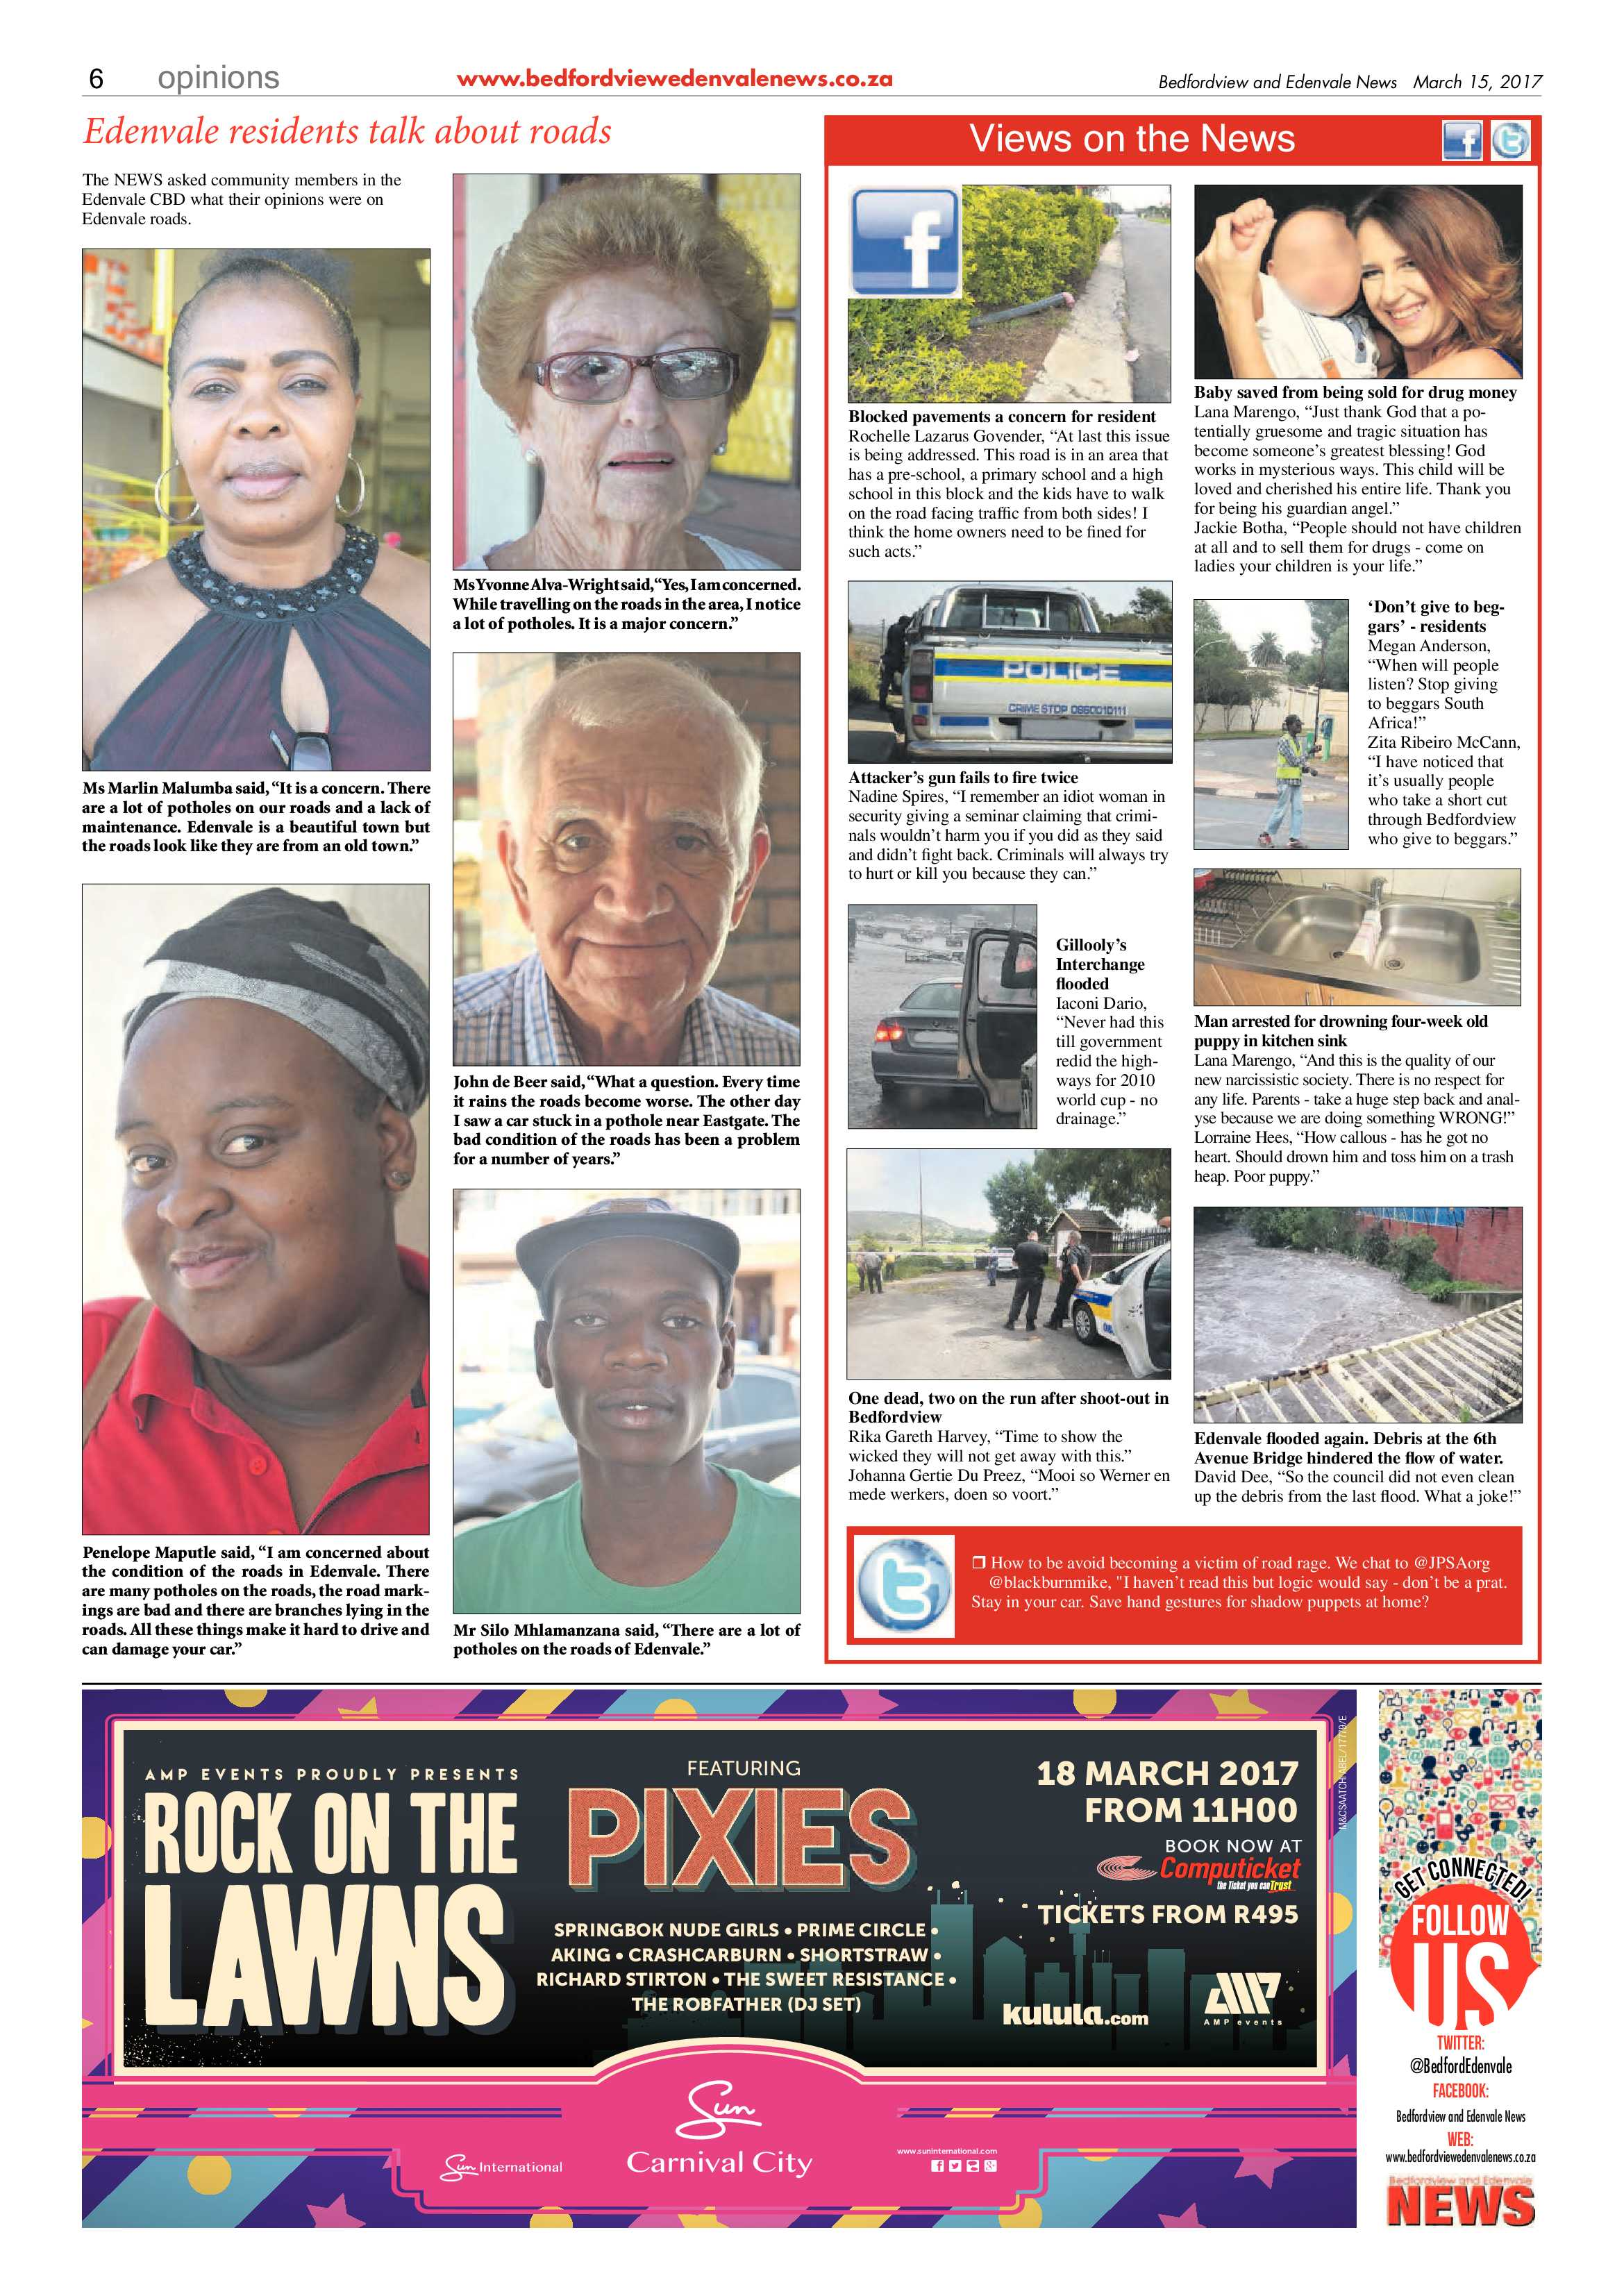 bedfordview-edenvale-news-15-march-2017-epapers-page-6